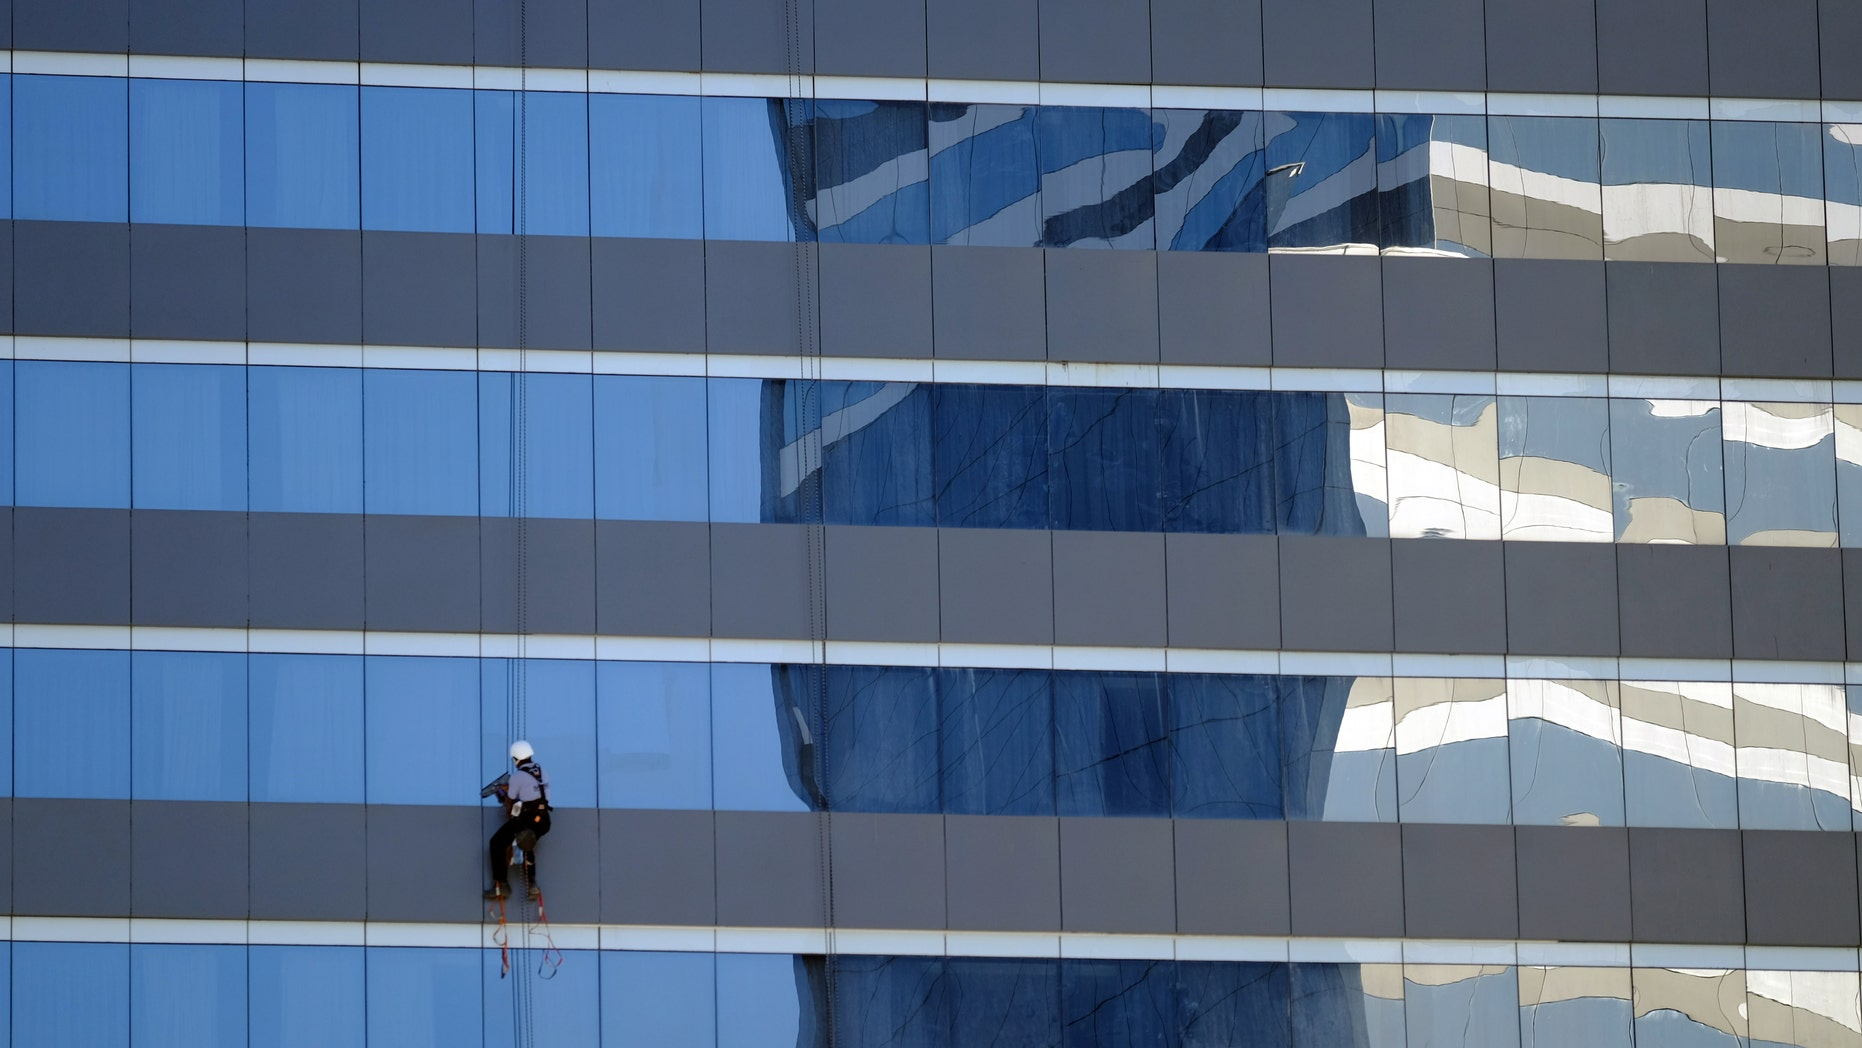 A window washer works outside a Marriott hotel near the Olympic Park before the start of the Rio 2016 Olympics in Rio de Janeiro, August 1, 2016. Picture taken August 1, 2016.